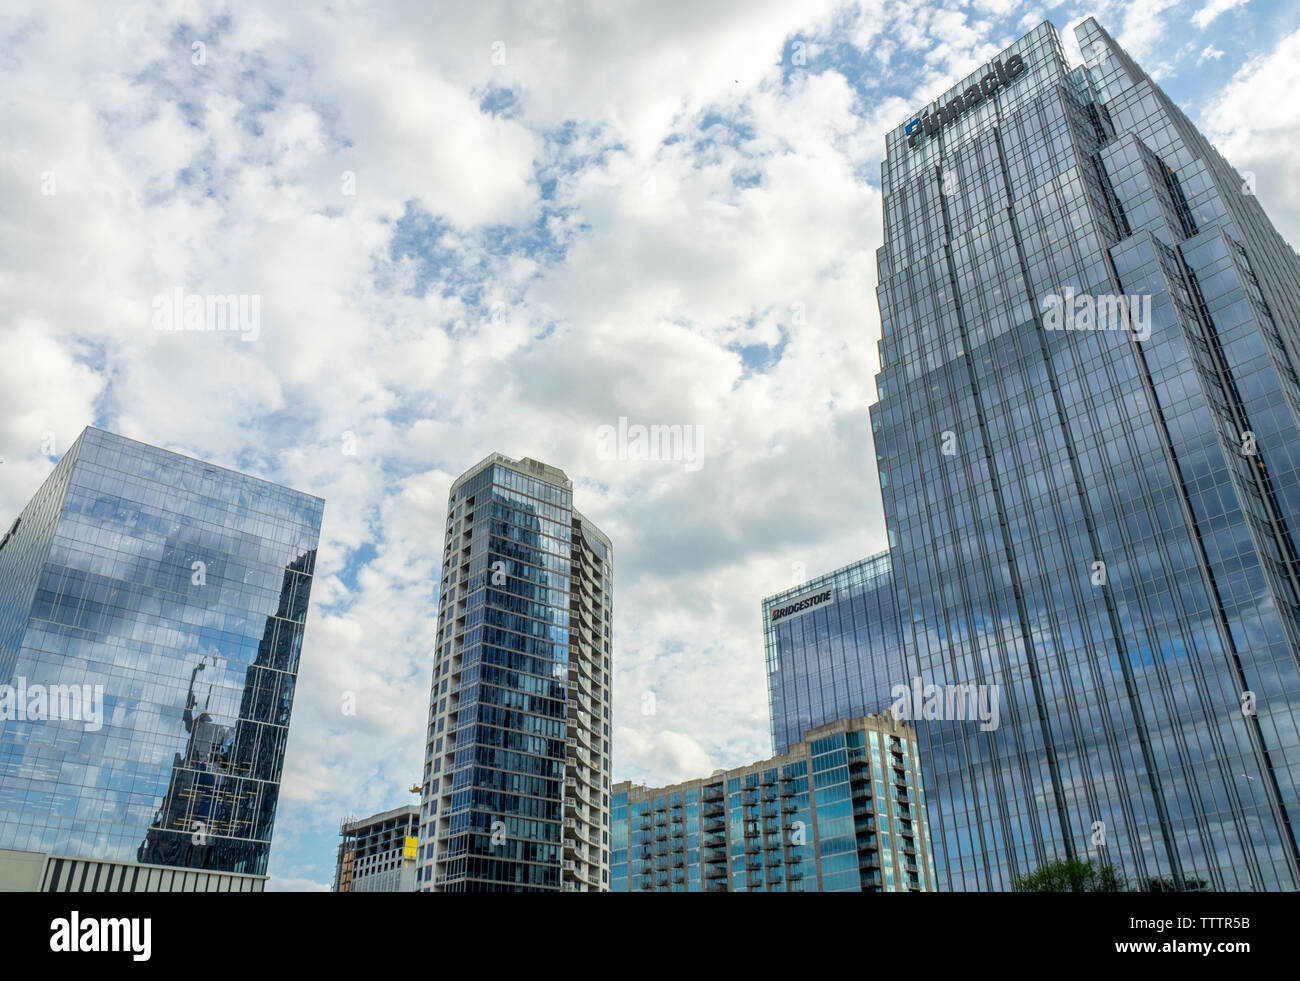 the-pinnacle-at-symphony-place-office-tower-and-other-skyscrapers-in-the-skyline-of-nashville-tennessee-usa-TTTR5B.jpg